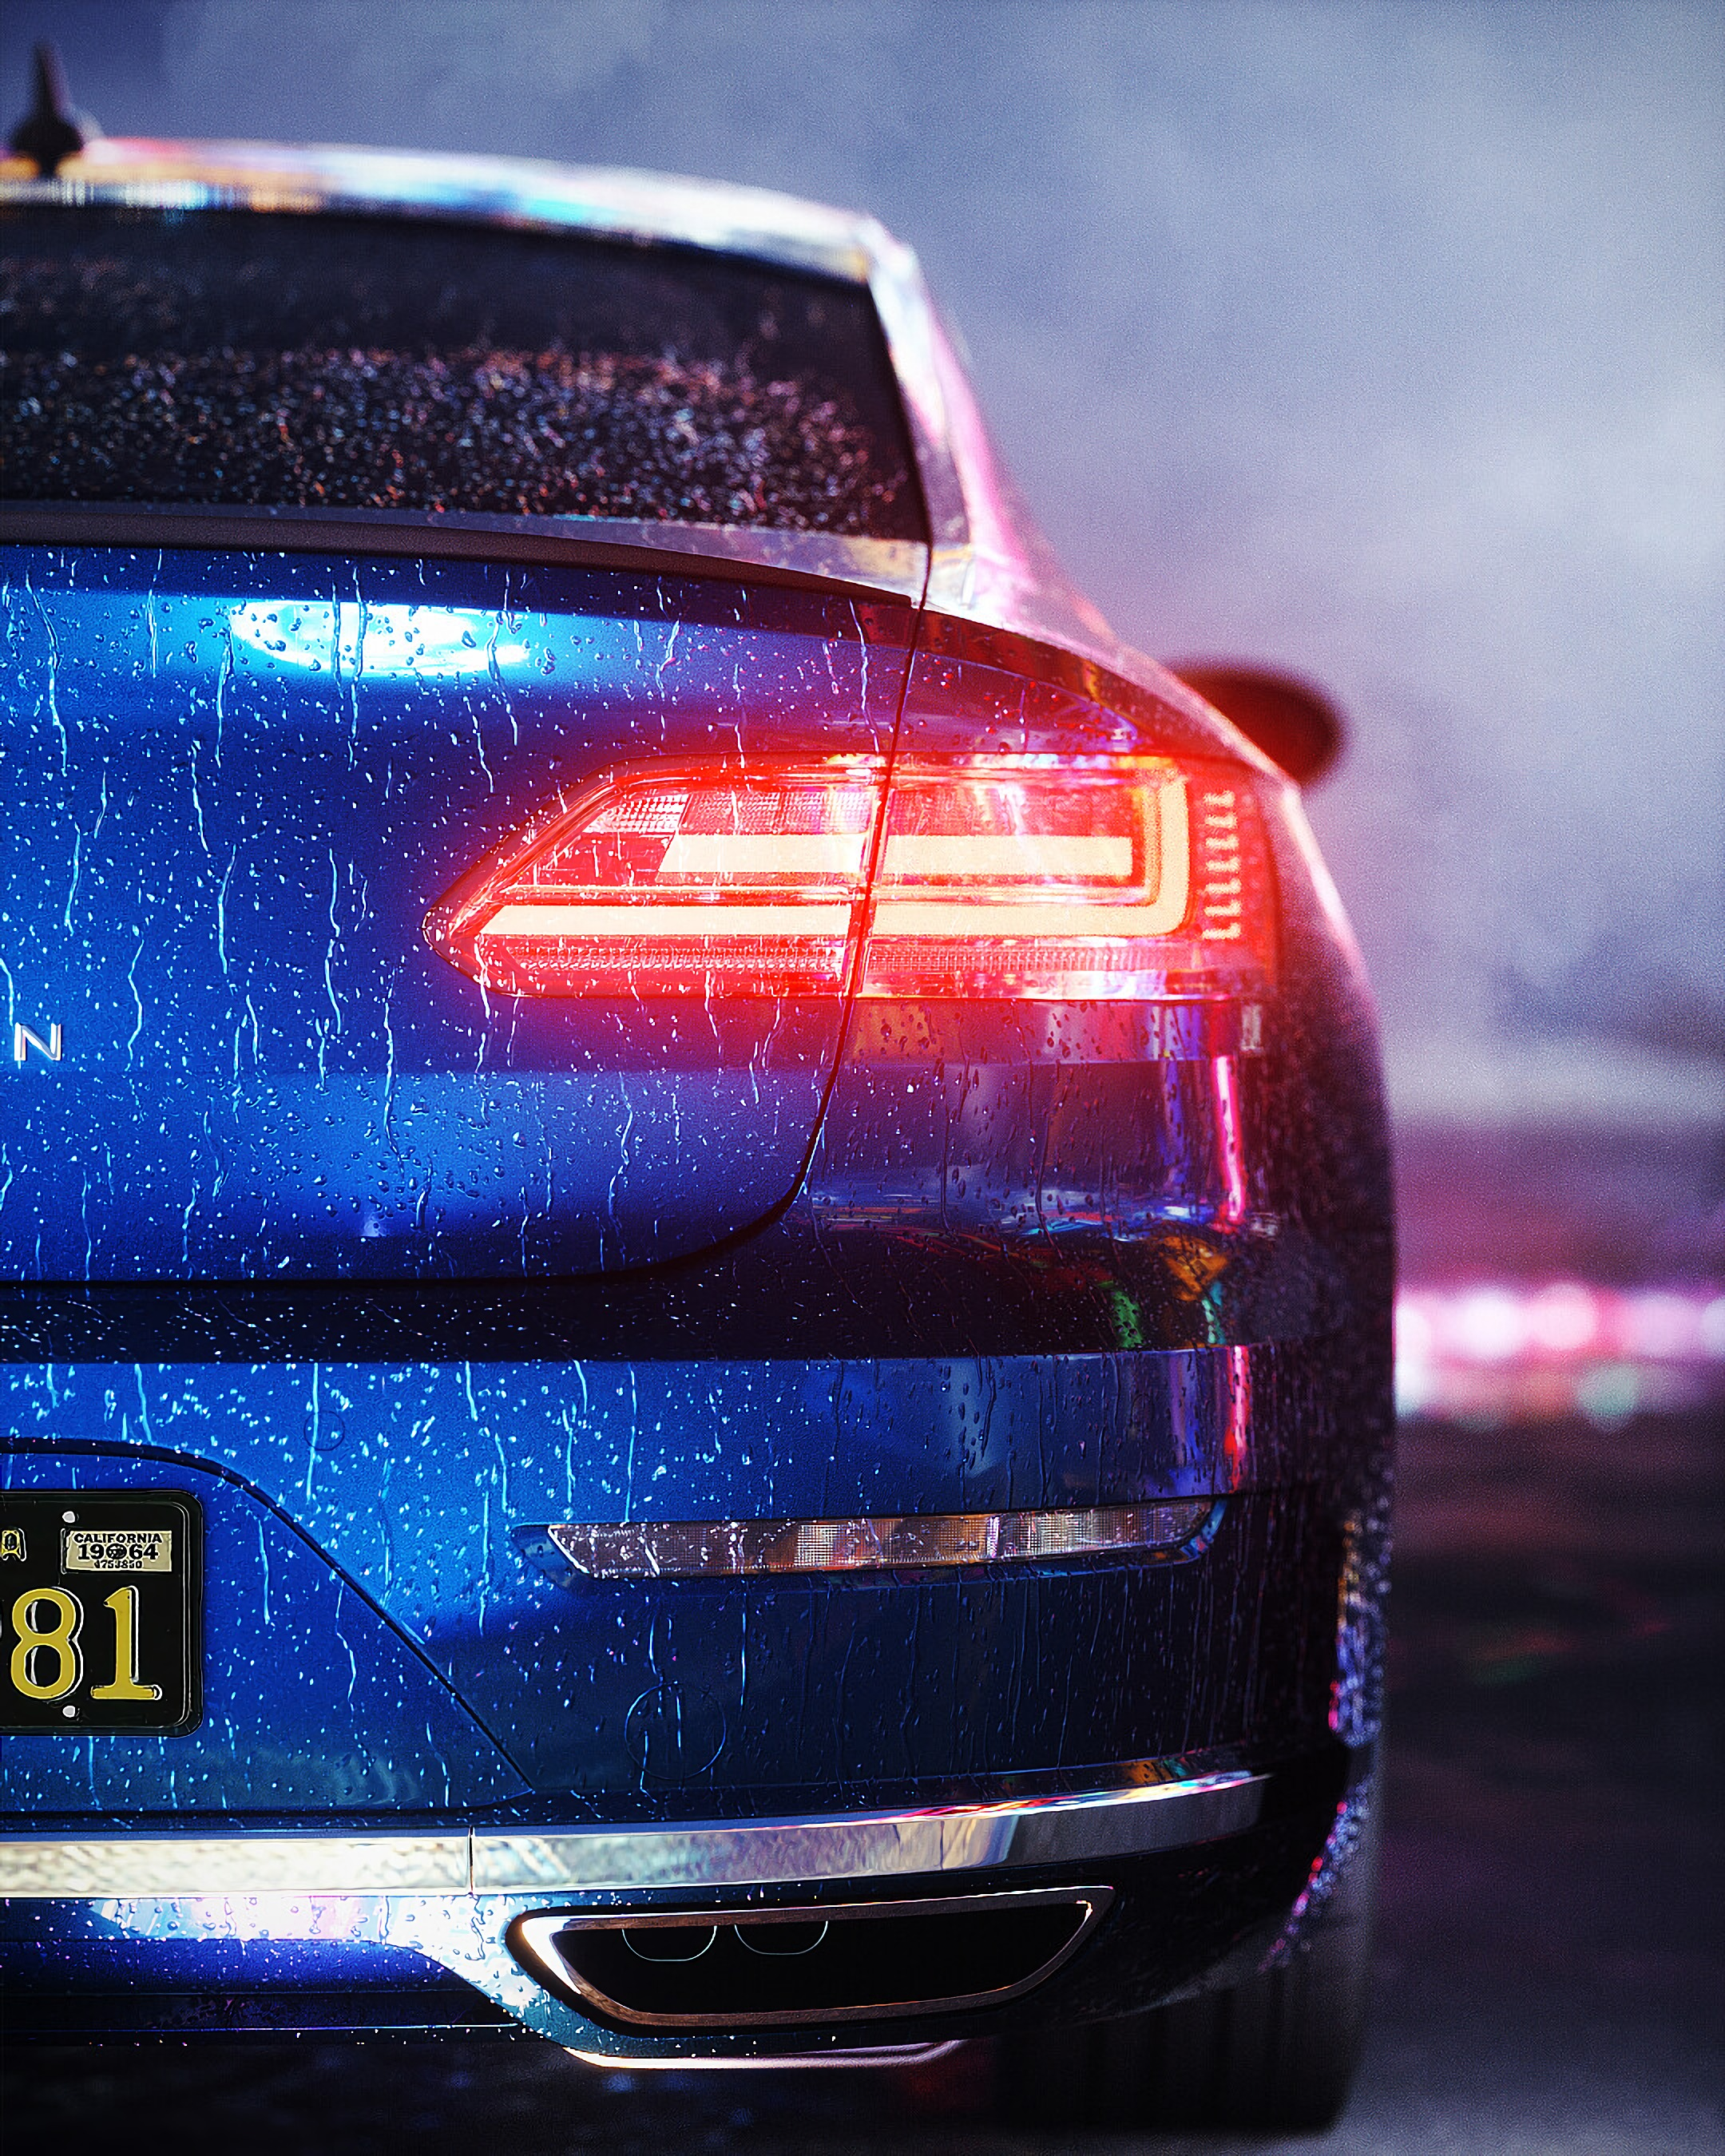 157201 Screensavers and Wallpapers Wet for phone. Download Cars, Shine, Light, Wet, Car, Machine, Backlight, Illumination, Back View, Rear View pictures for free